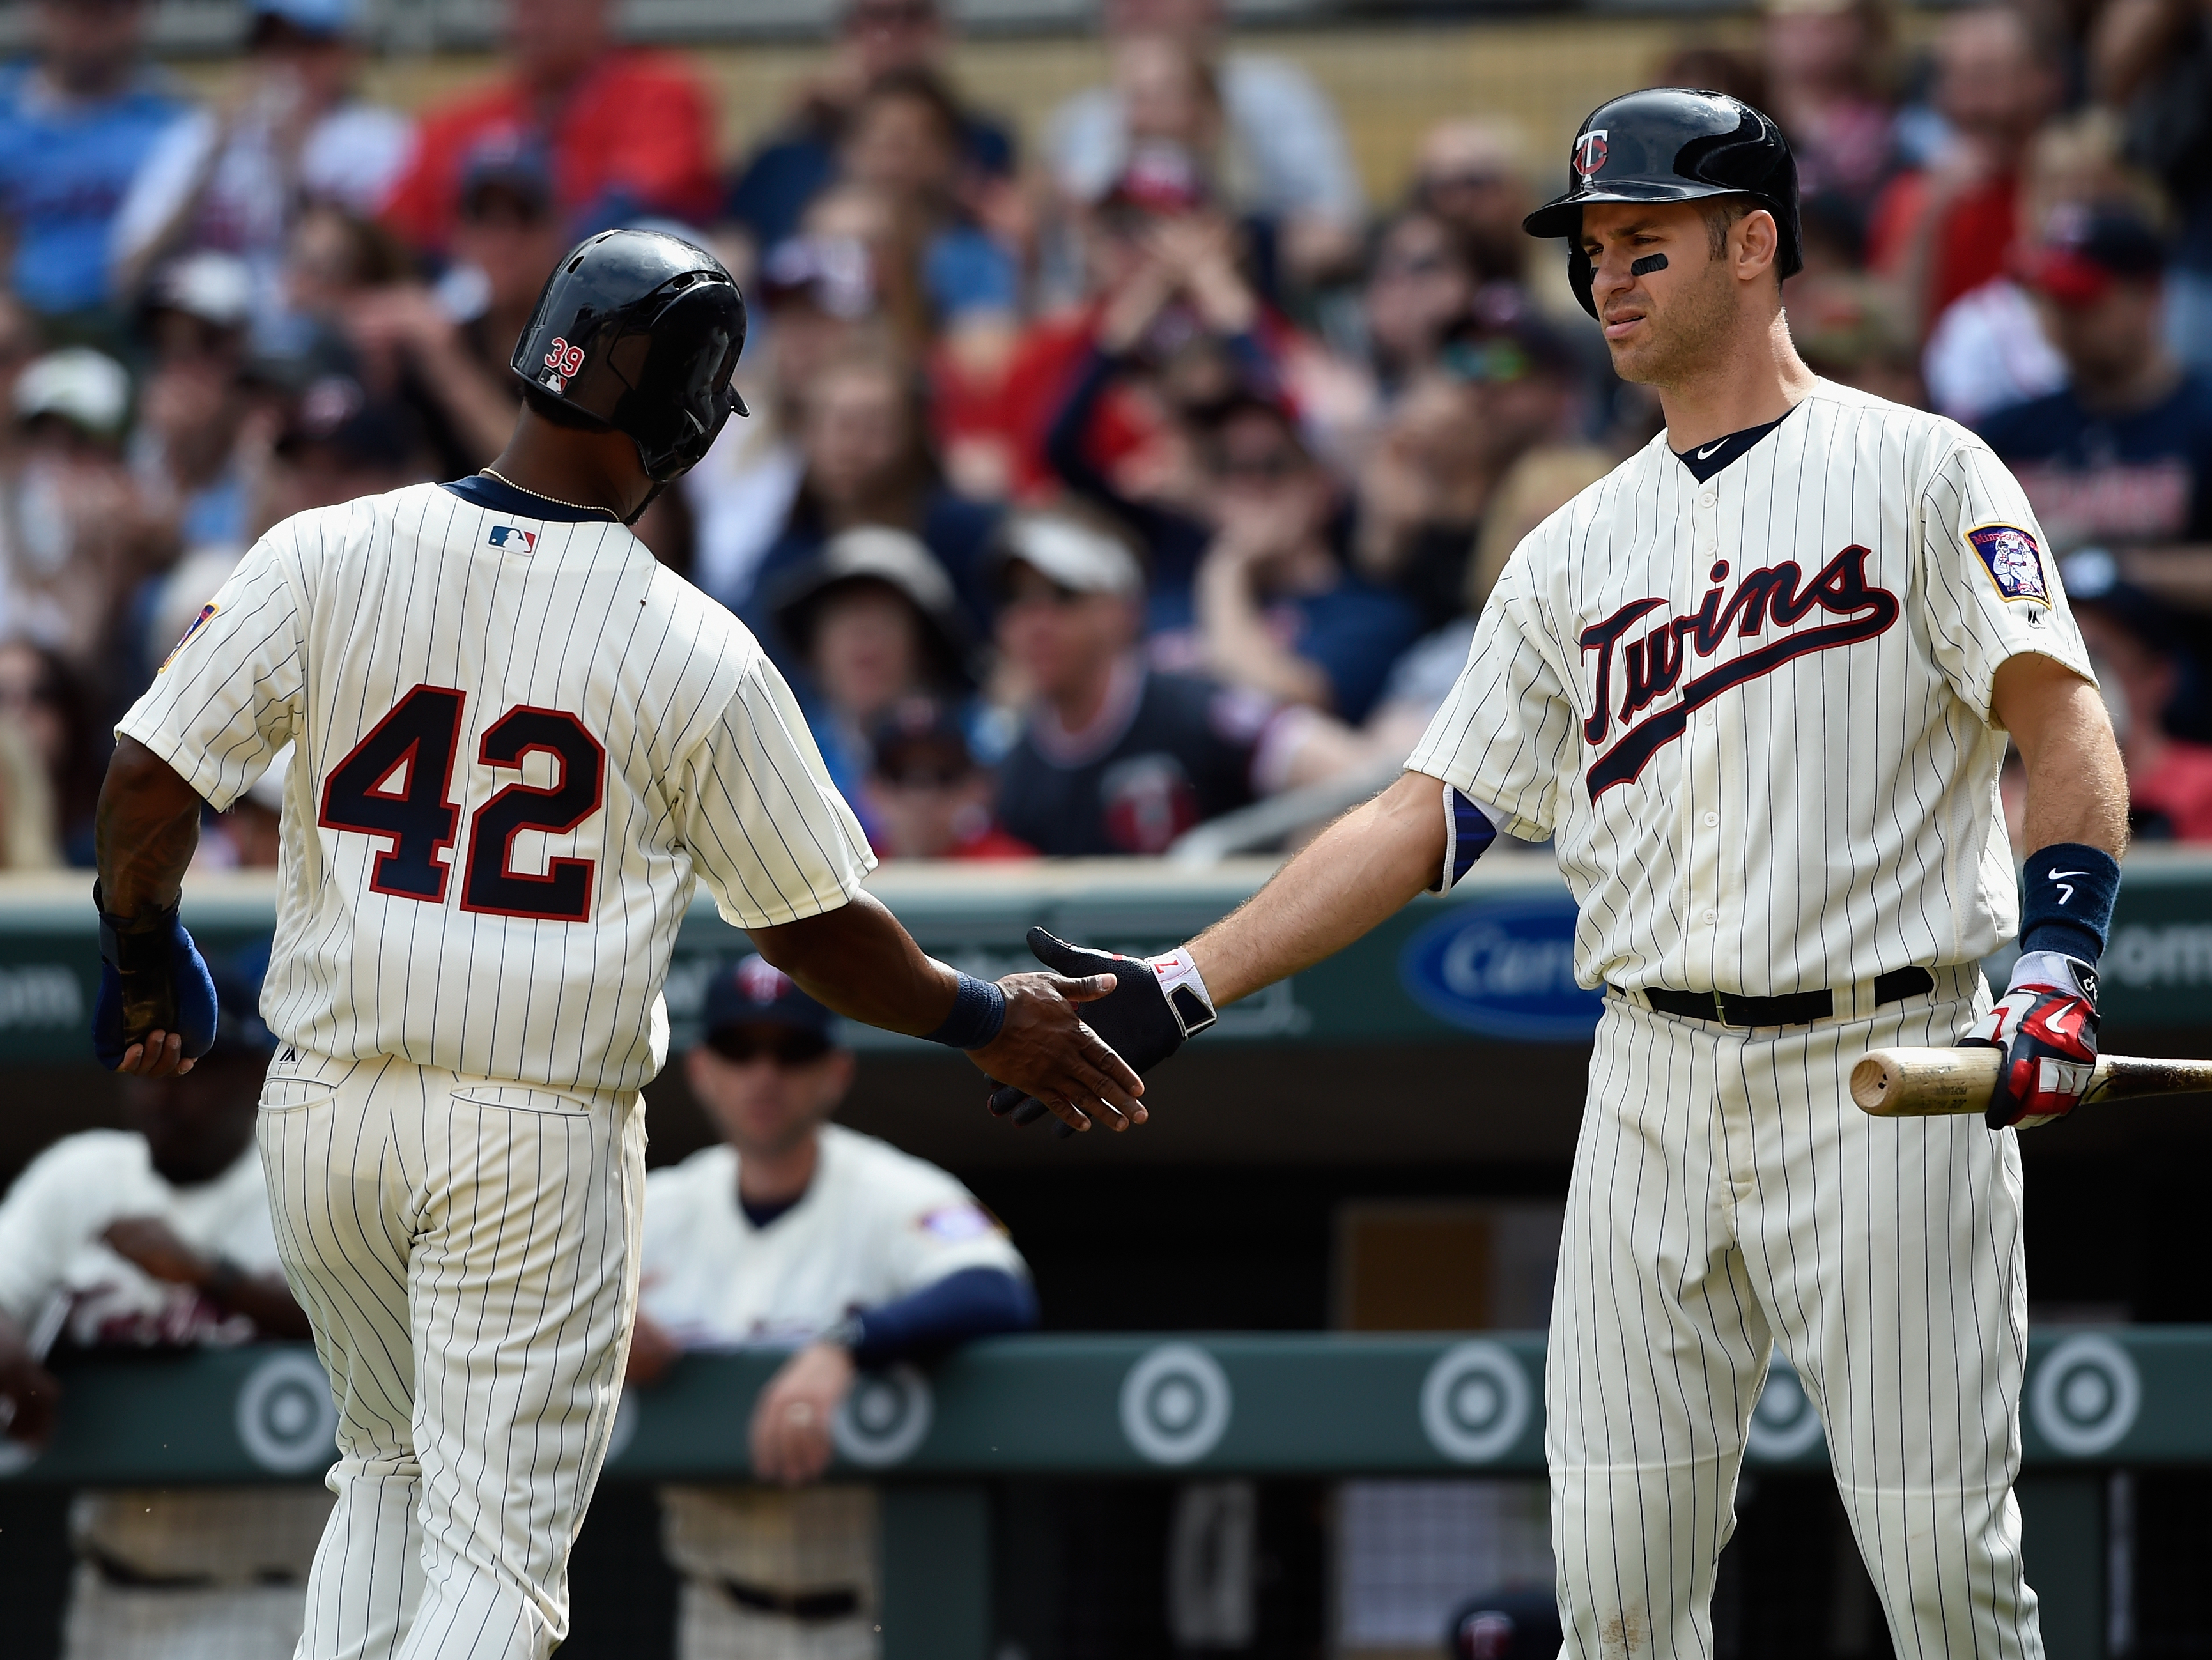 Indians 3, Twins 1 - Buxton gets a rest, not much changes